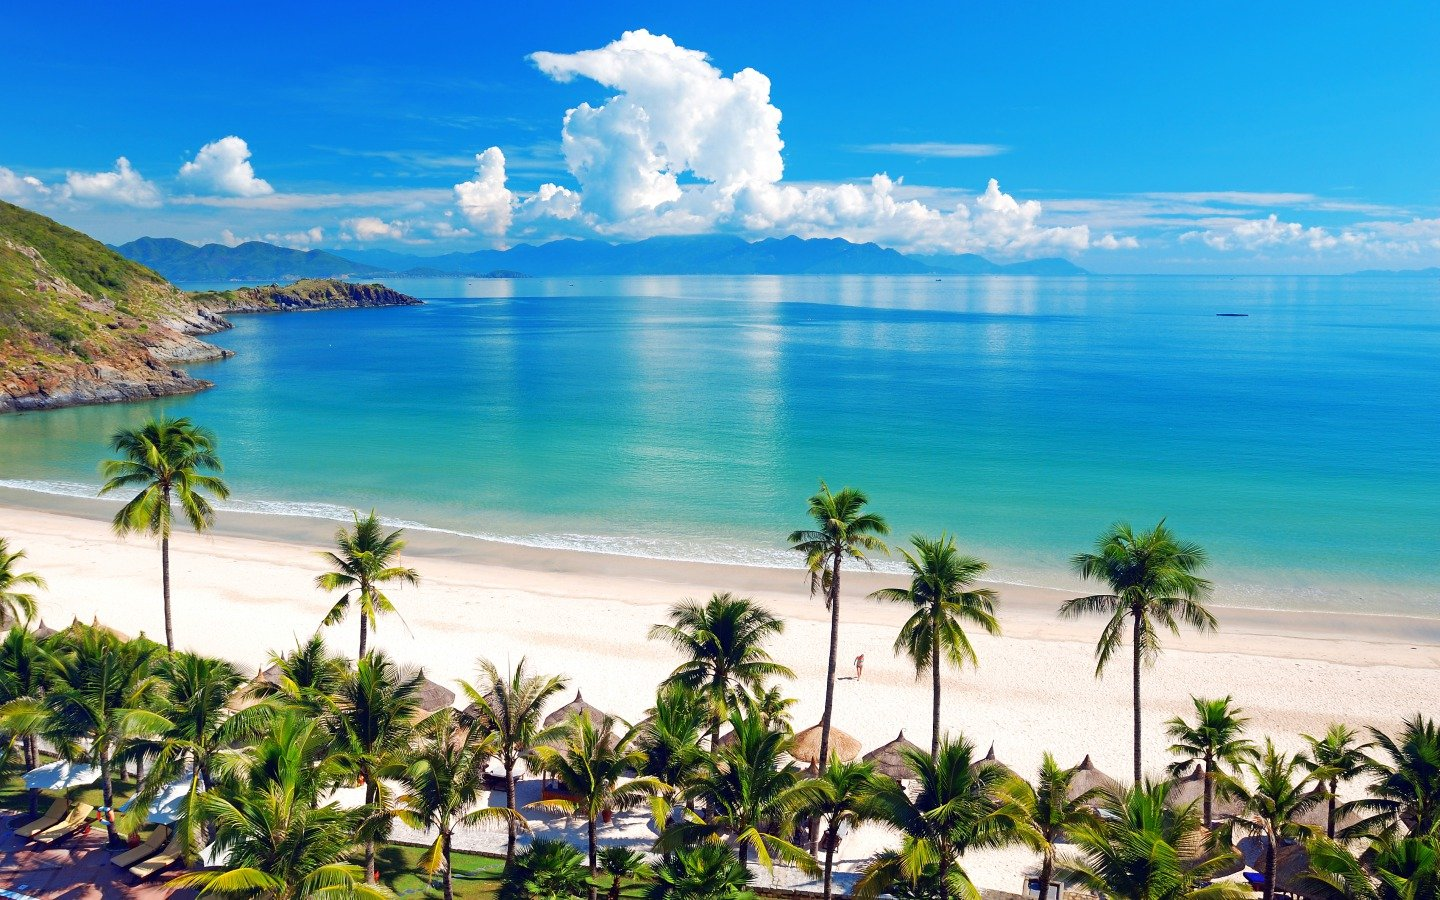 Beach Desktop Backgrounds for Windows 7 1 1440x900